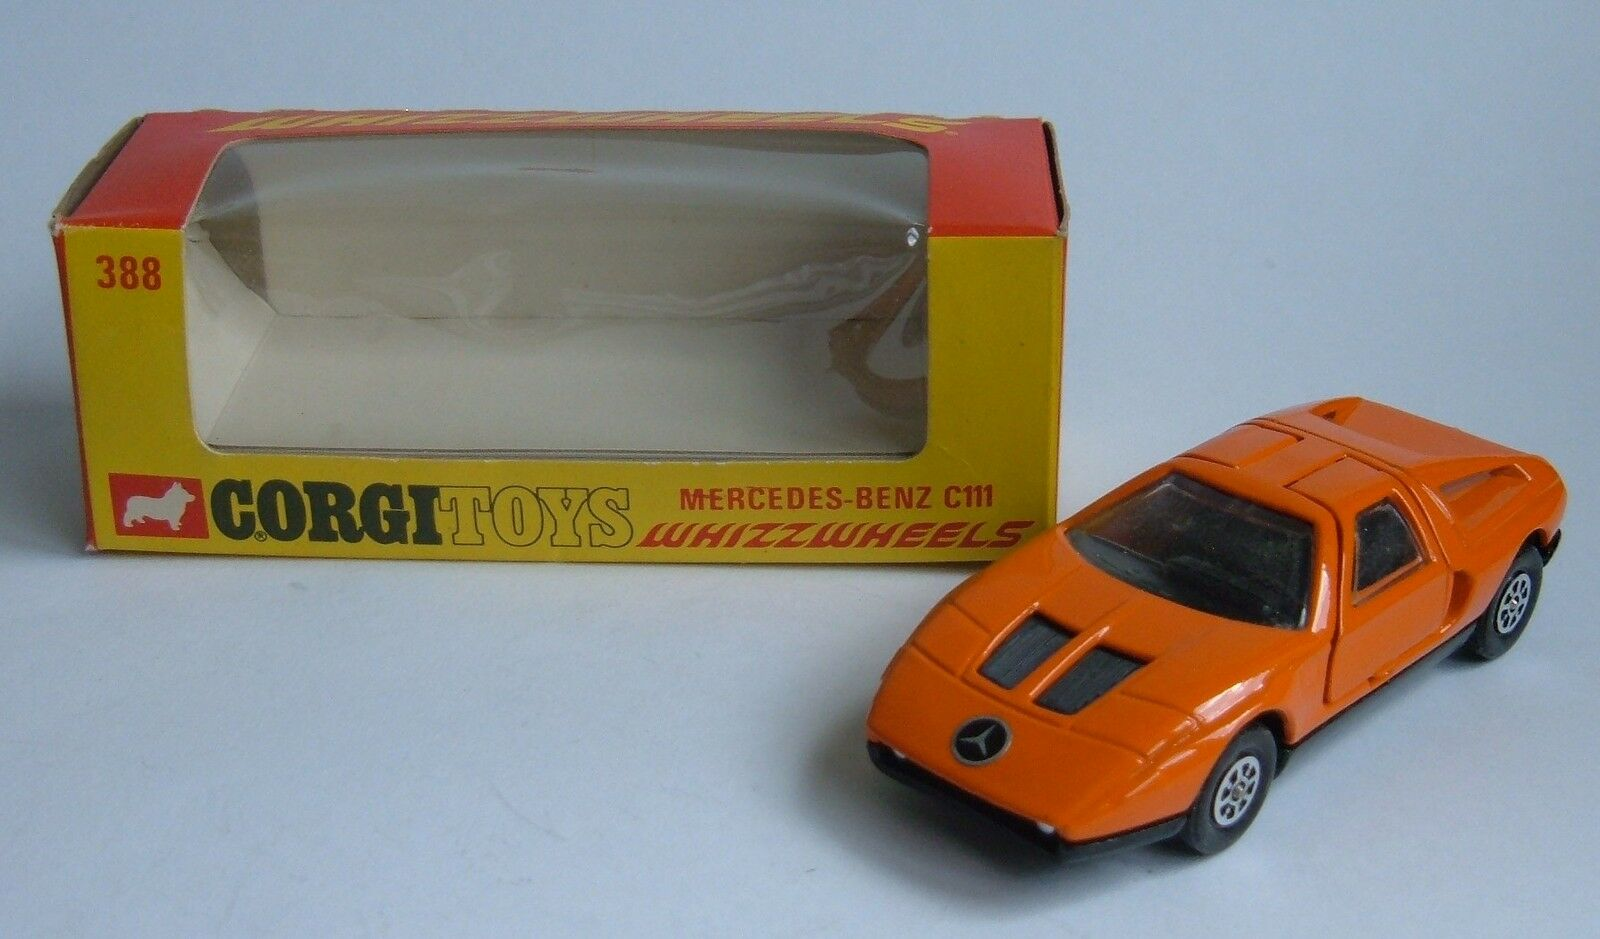 Corgi Toys No. 388, Mercedes-Benz C111, Whizzwheels, - Superb Mint